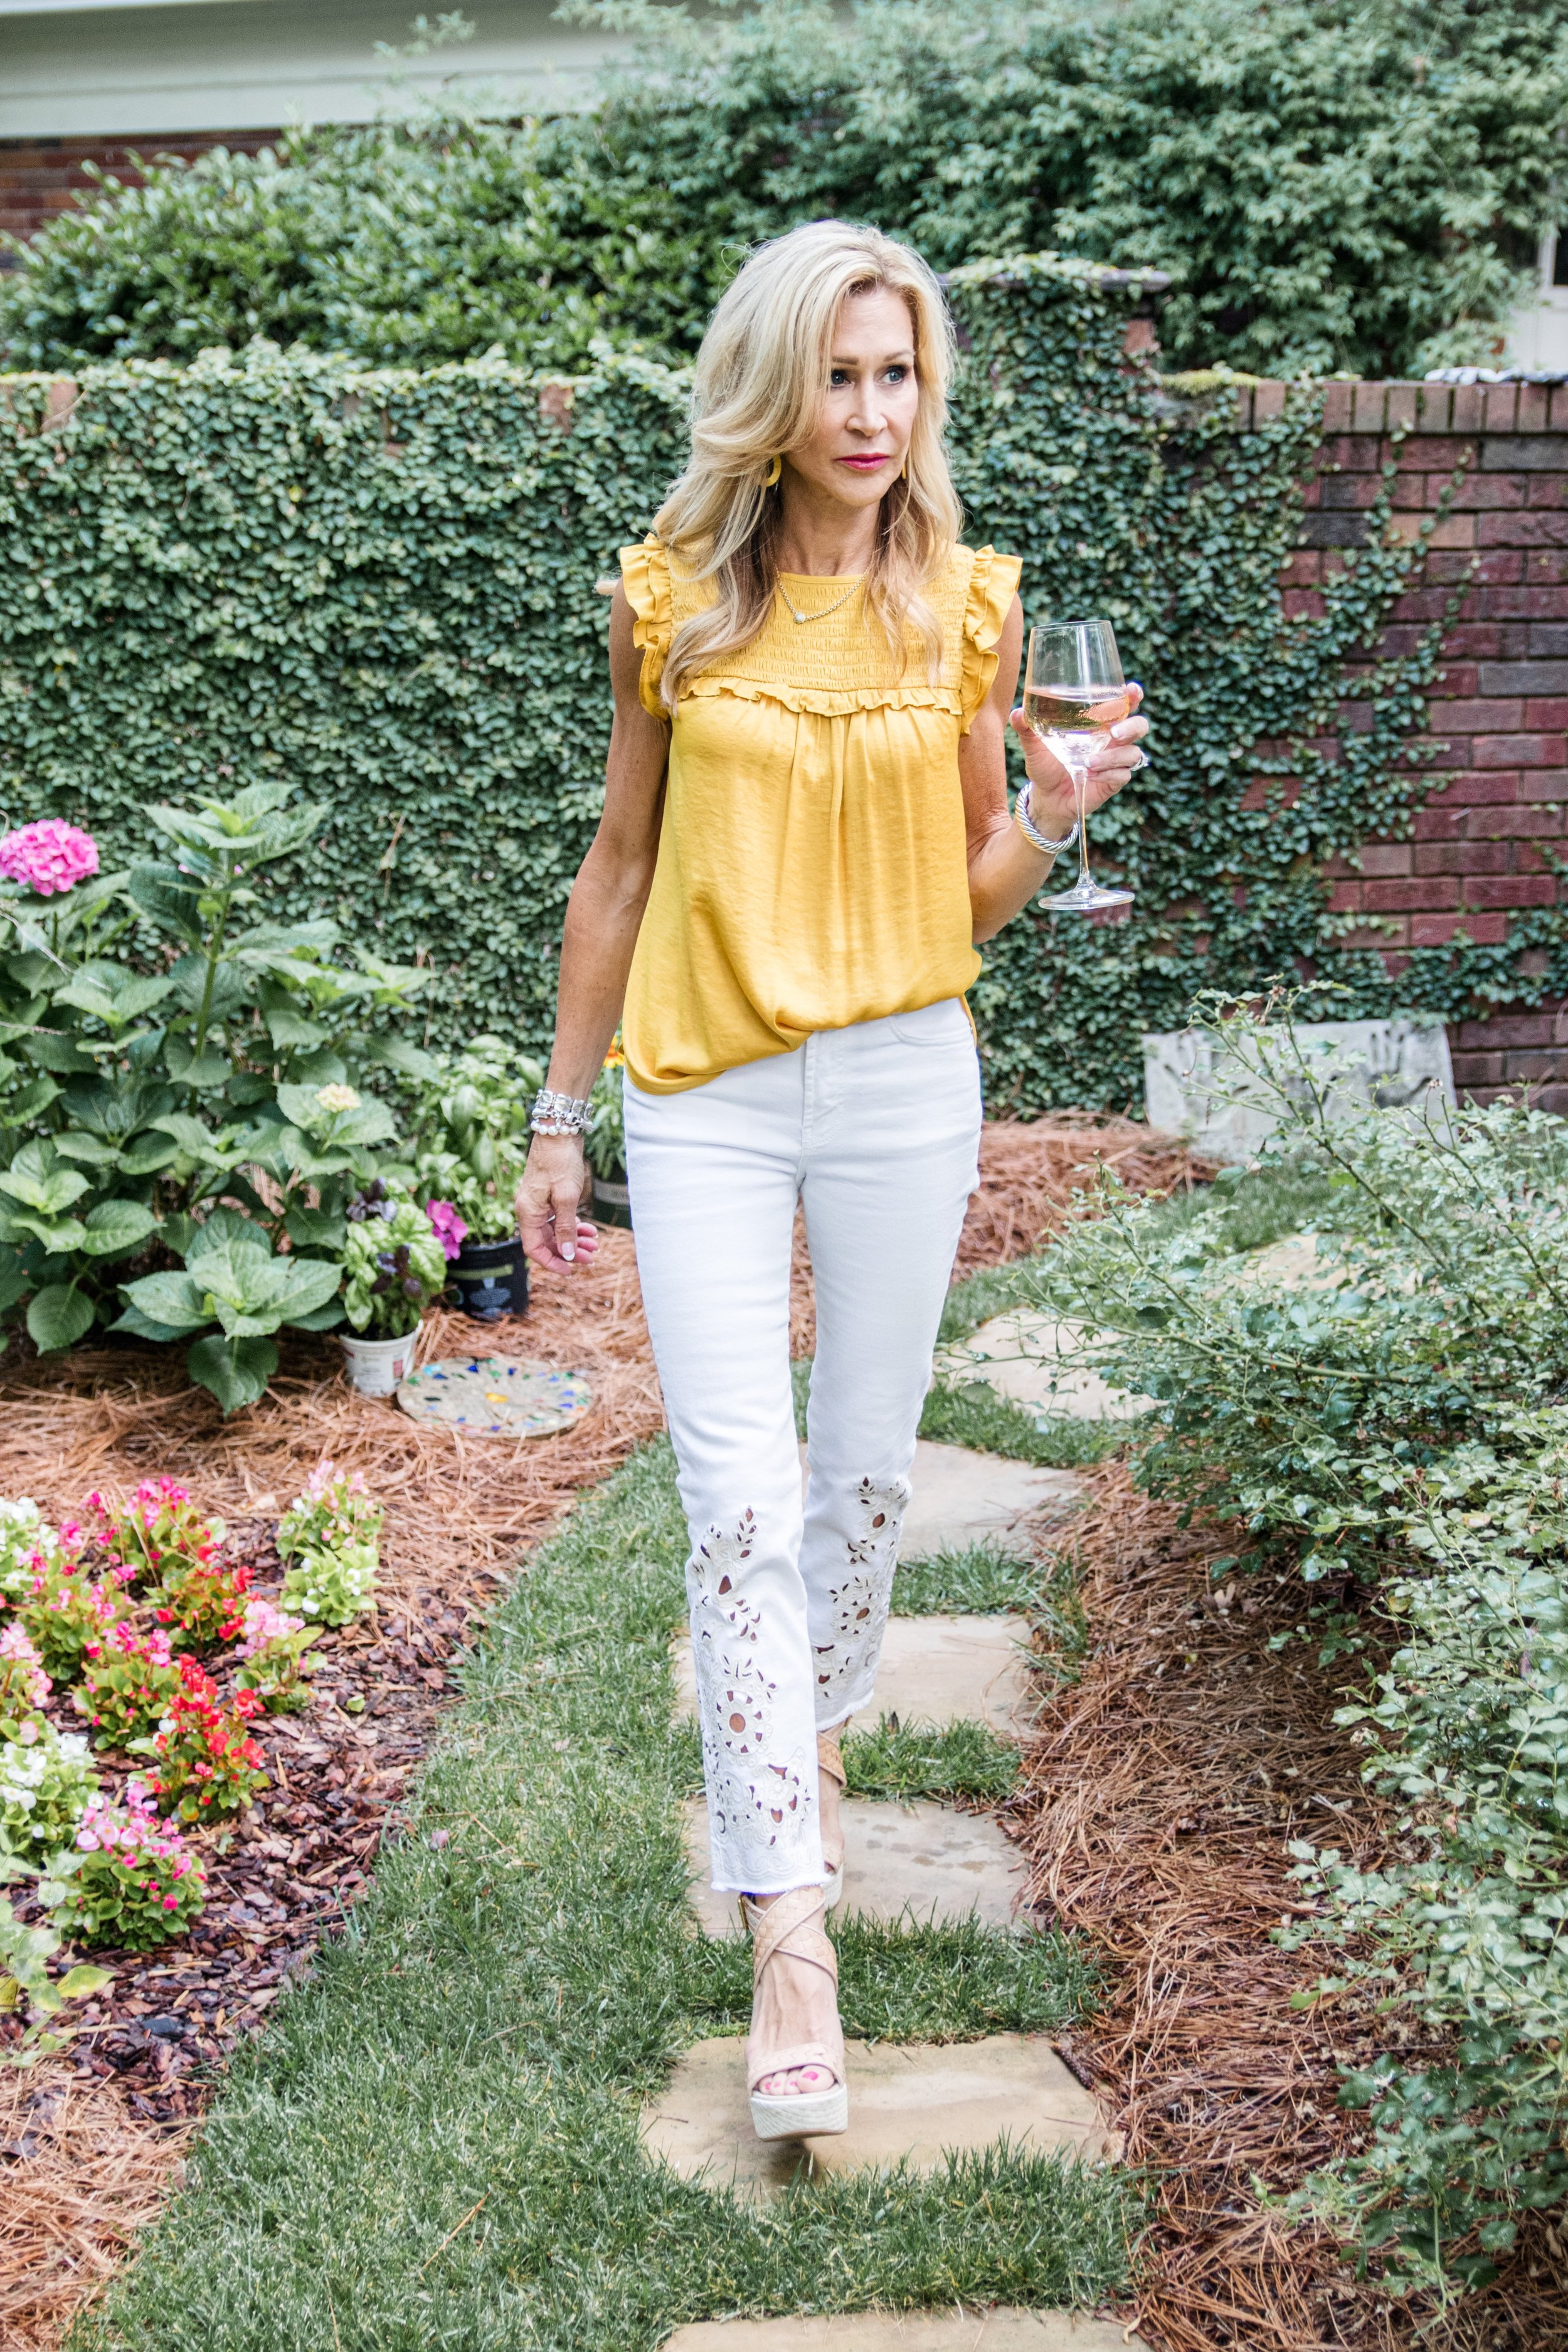 Embroidered white jeans with gold top - Crazy Blonde Style